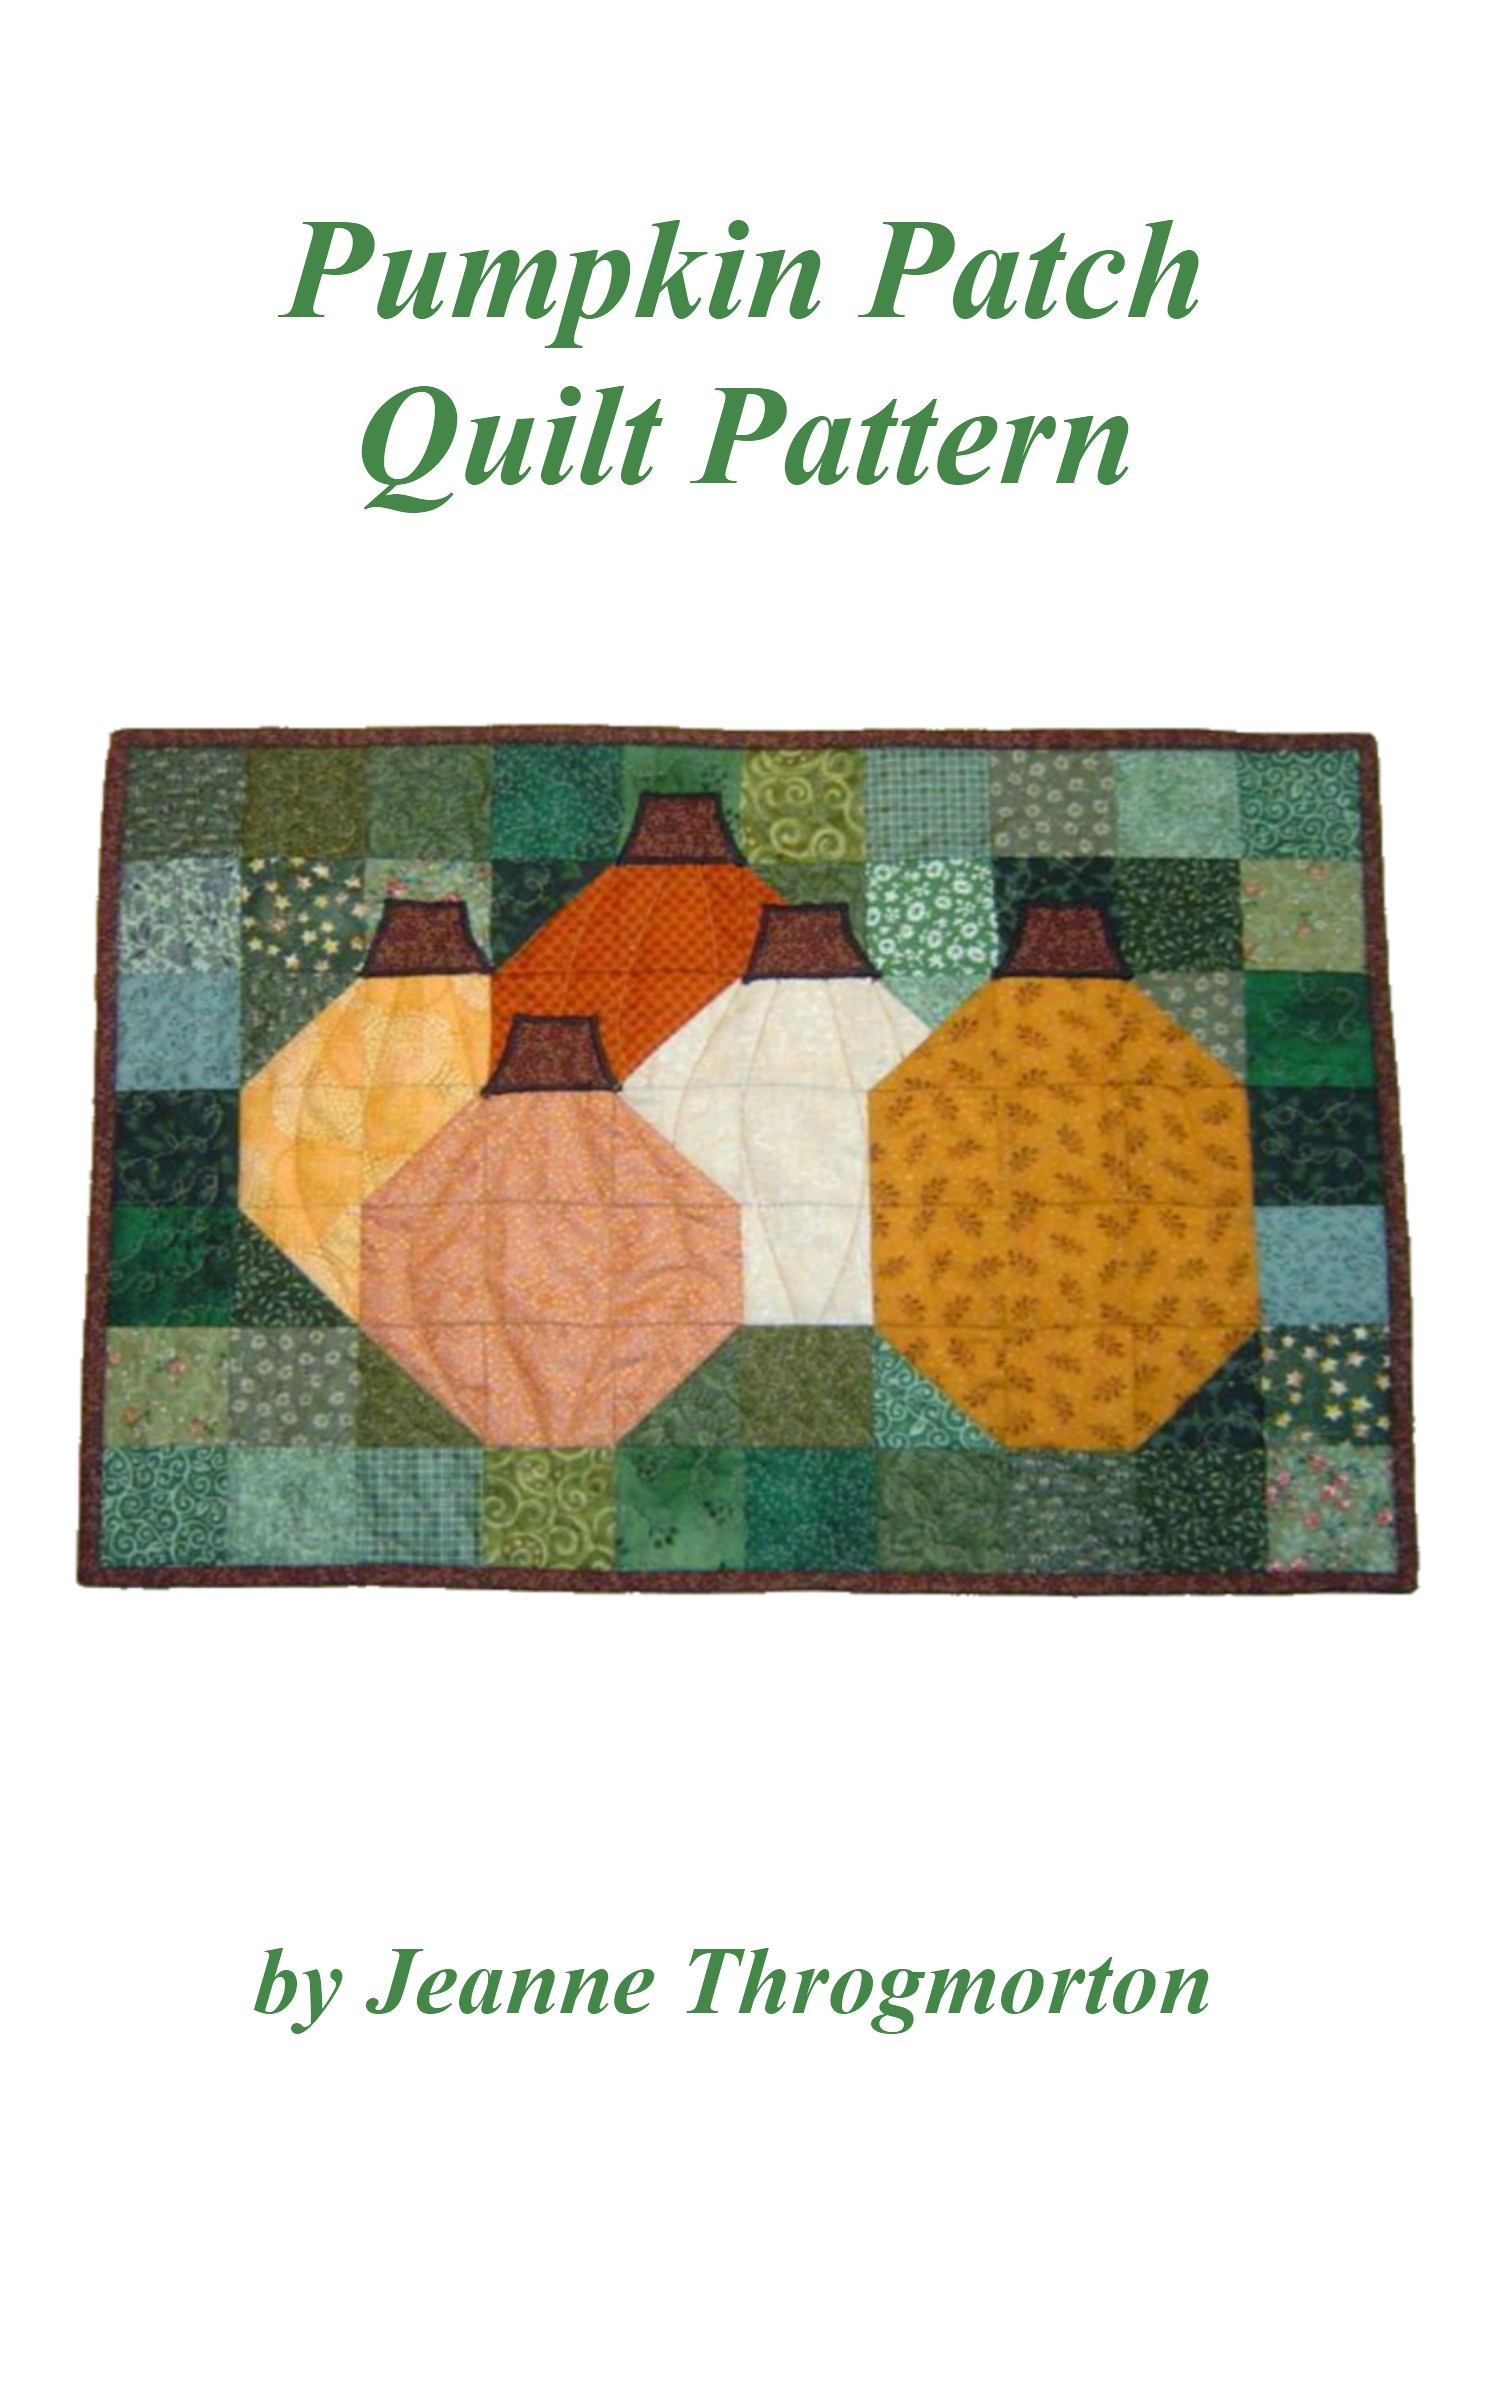 Pumpkin Patch Quilt Pattern